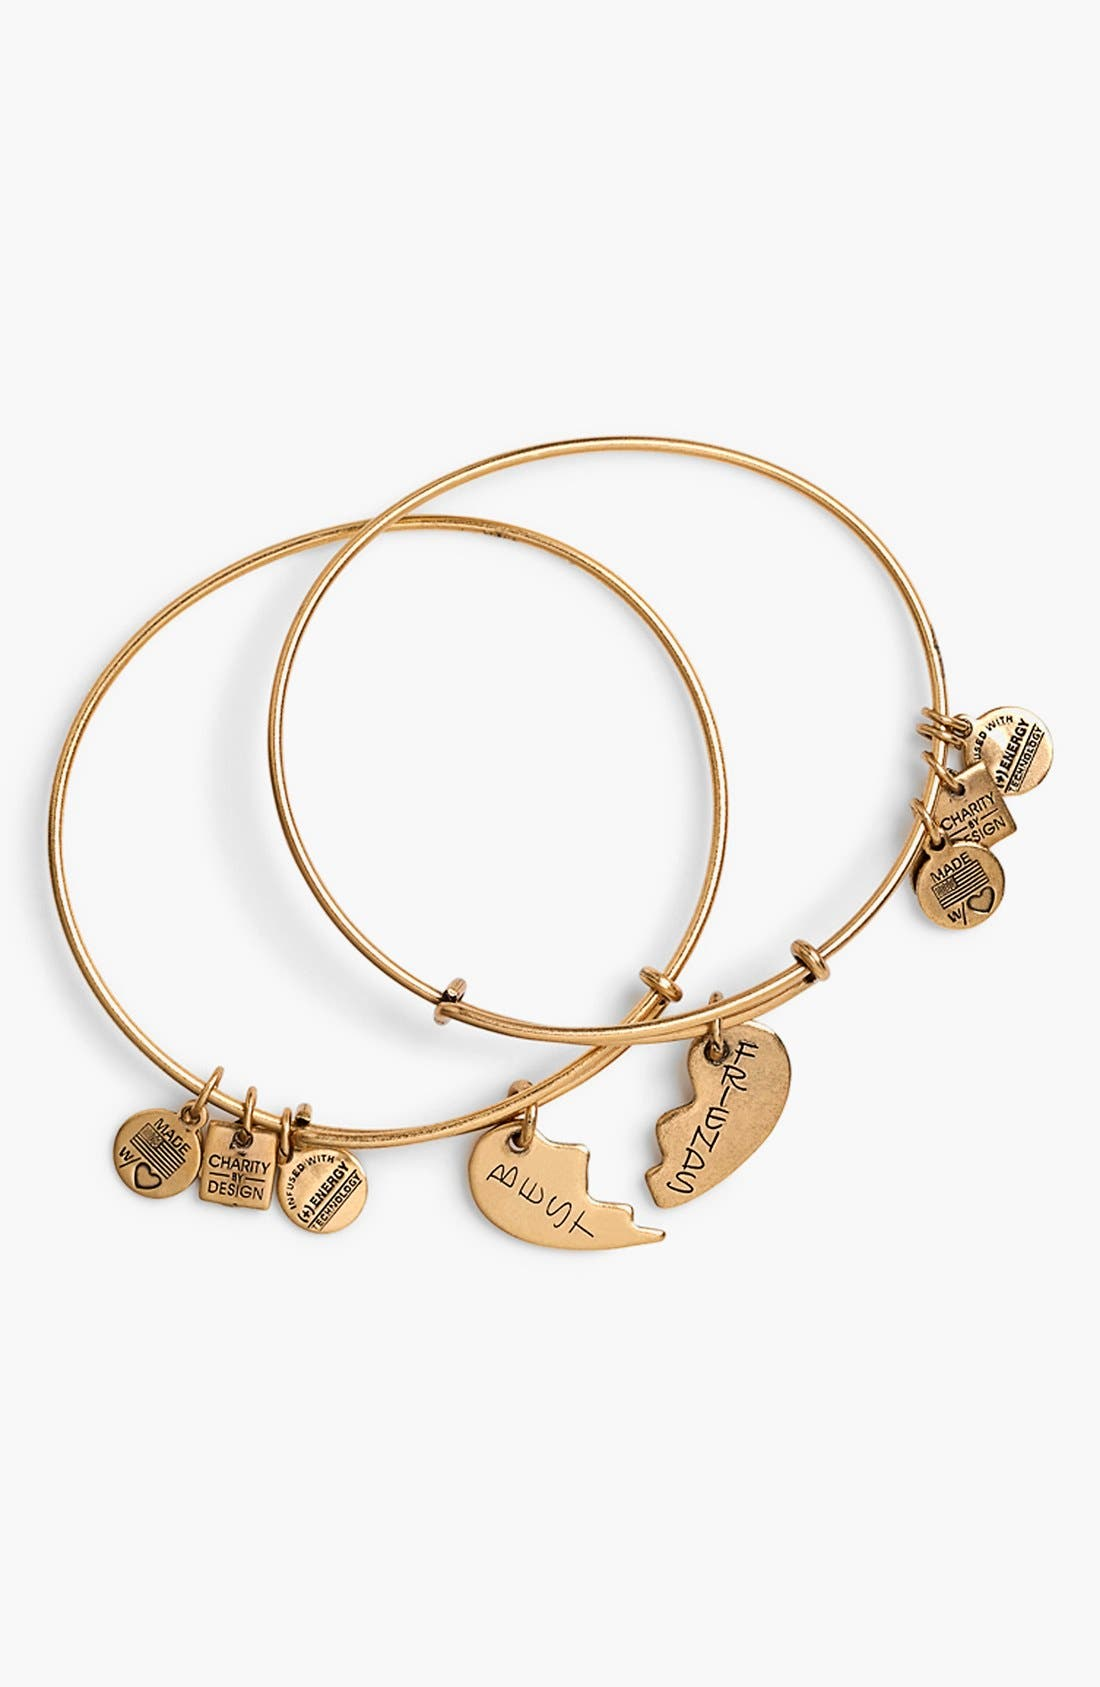 ALEX AND ANI 'Charity by Design - Best